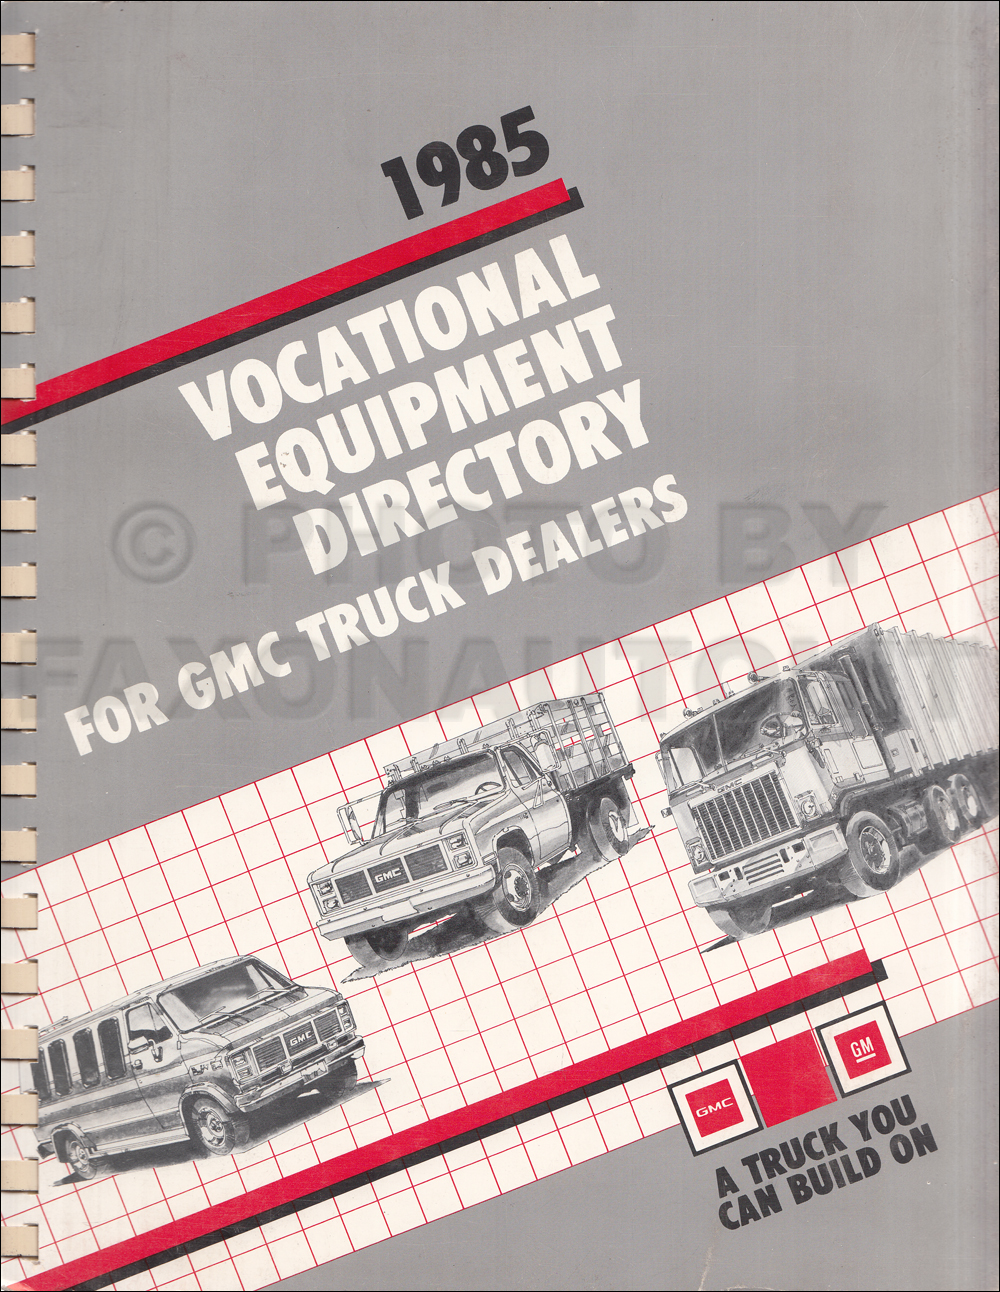 chevy gmc forward control wiring diagram original stepvan 1985 gmc truck vocational equipment dealer album original 149 00